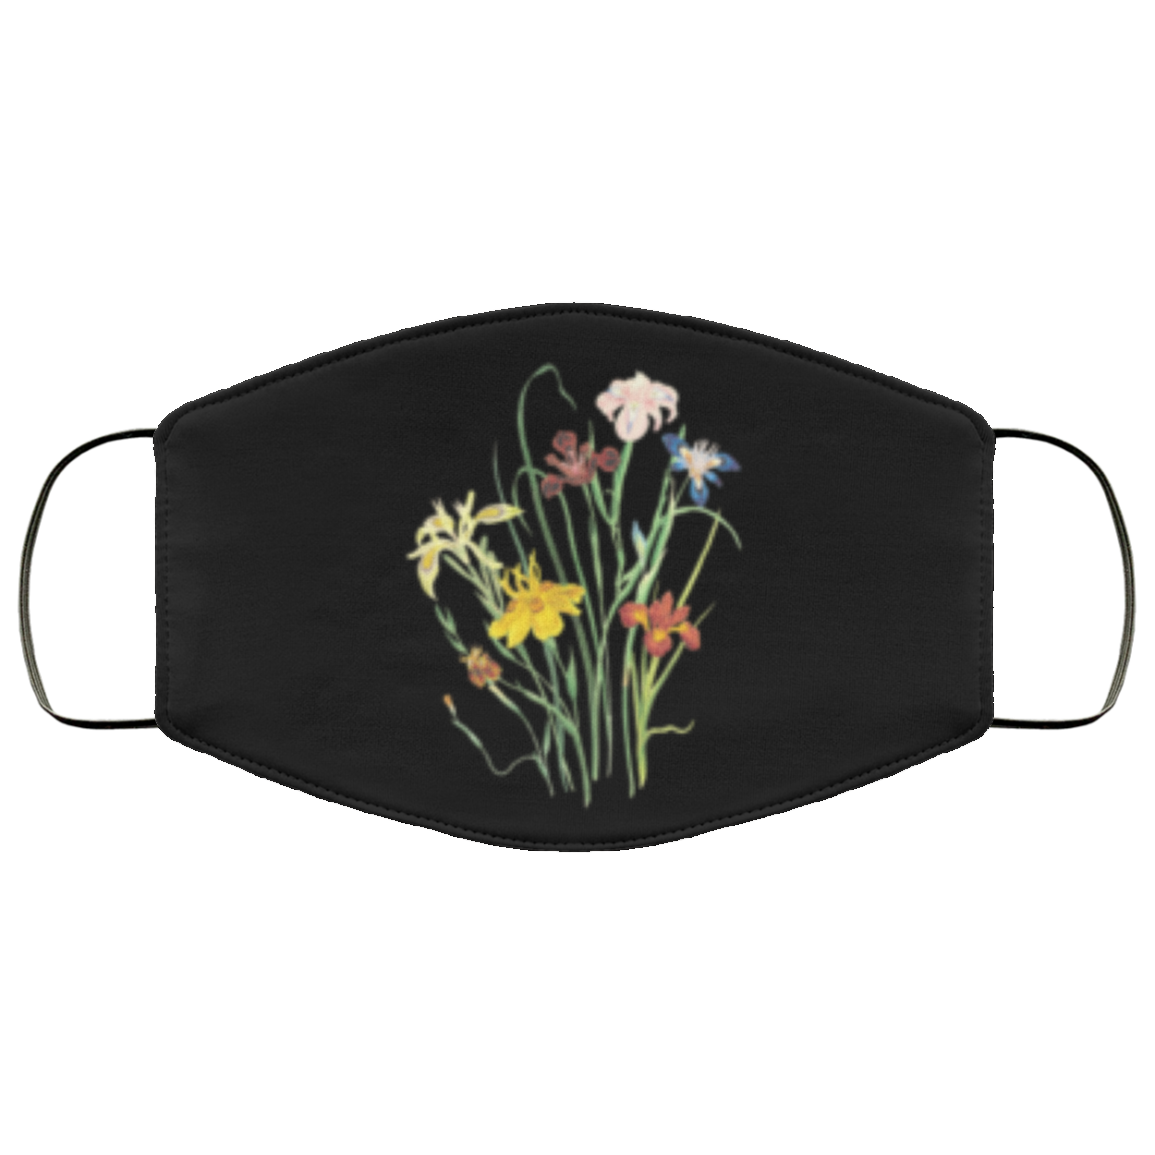 Flowers in the Dark Face Mask - OMG I Really Want That